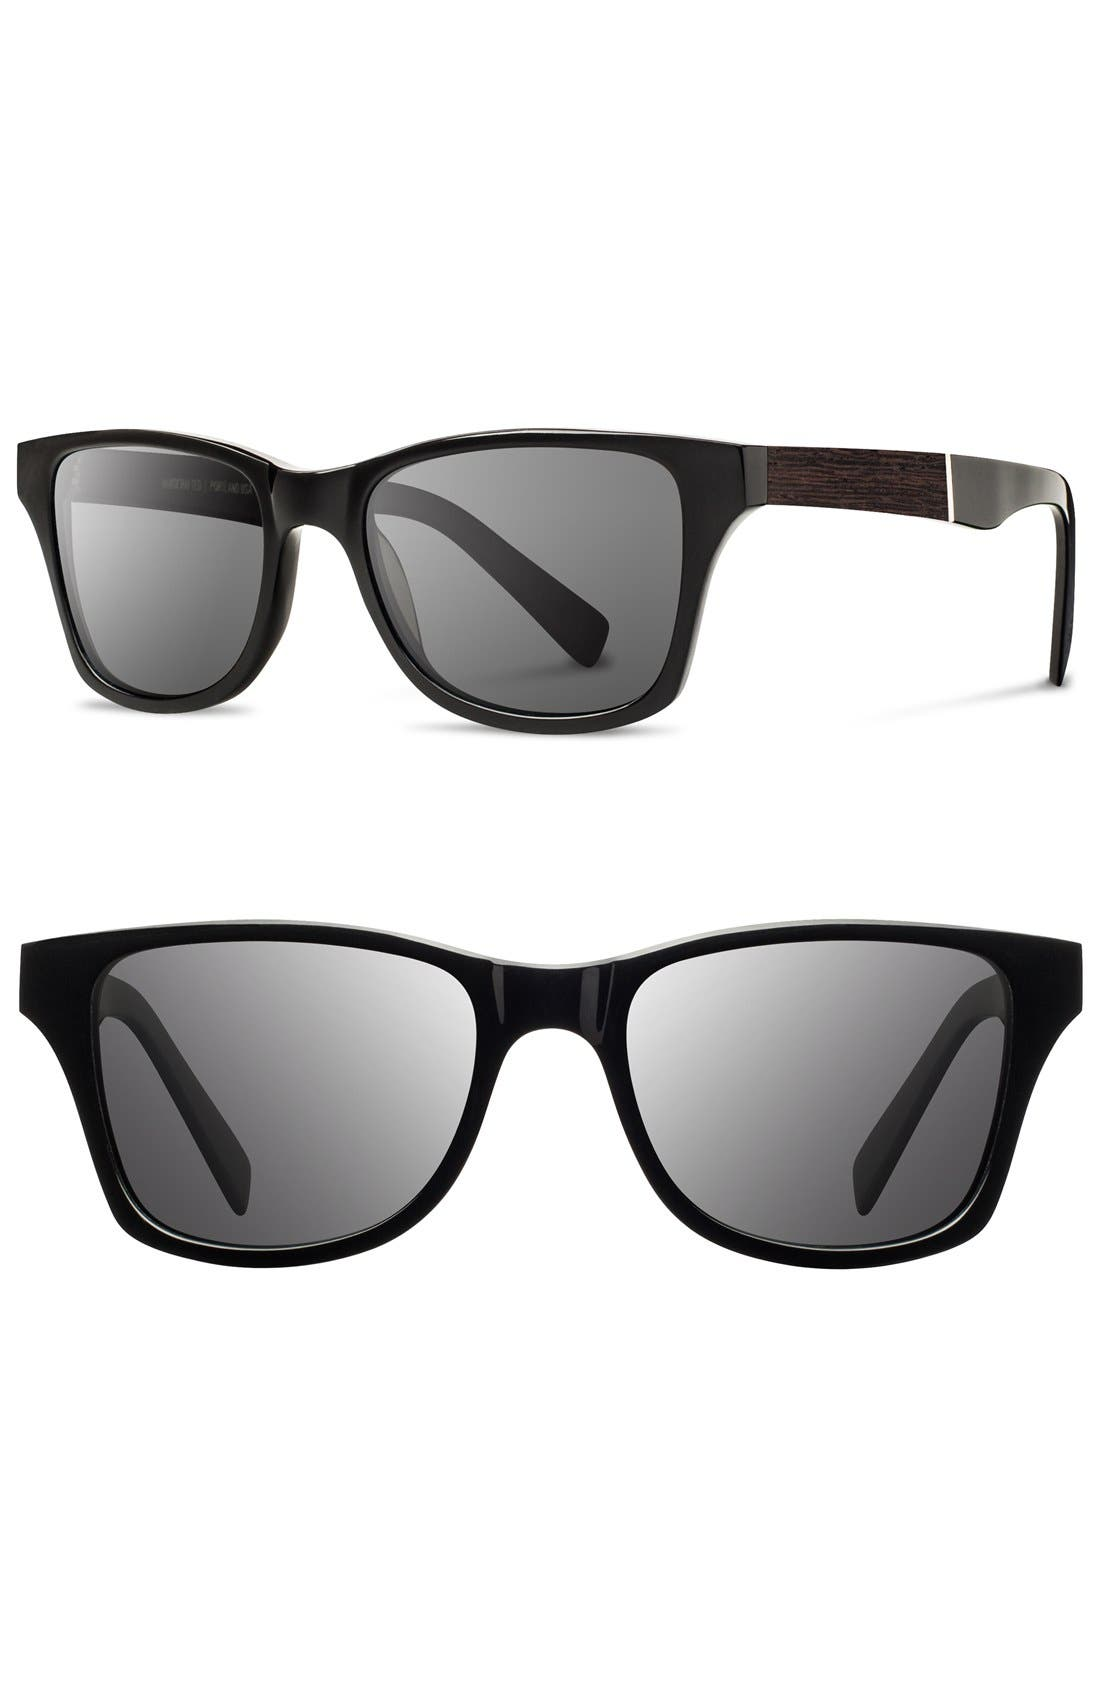 'Canby' 53mm Wood Sunglasses,                             Main thumbnail 1, color,